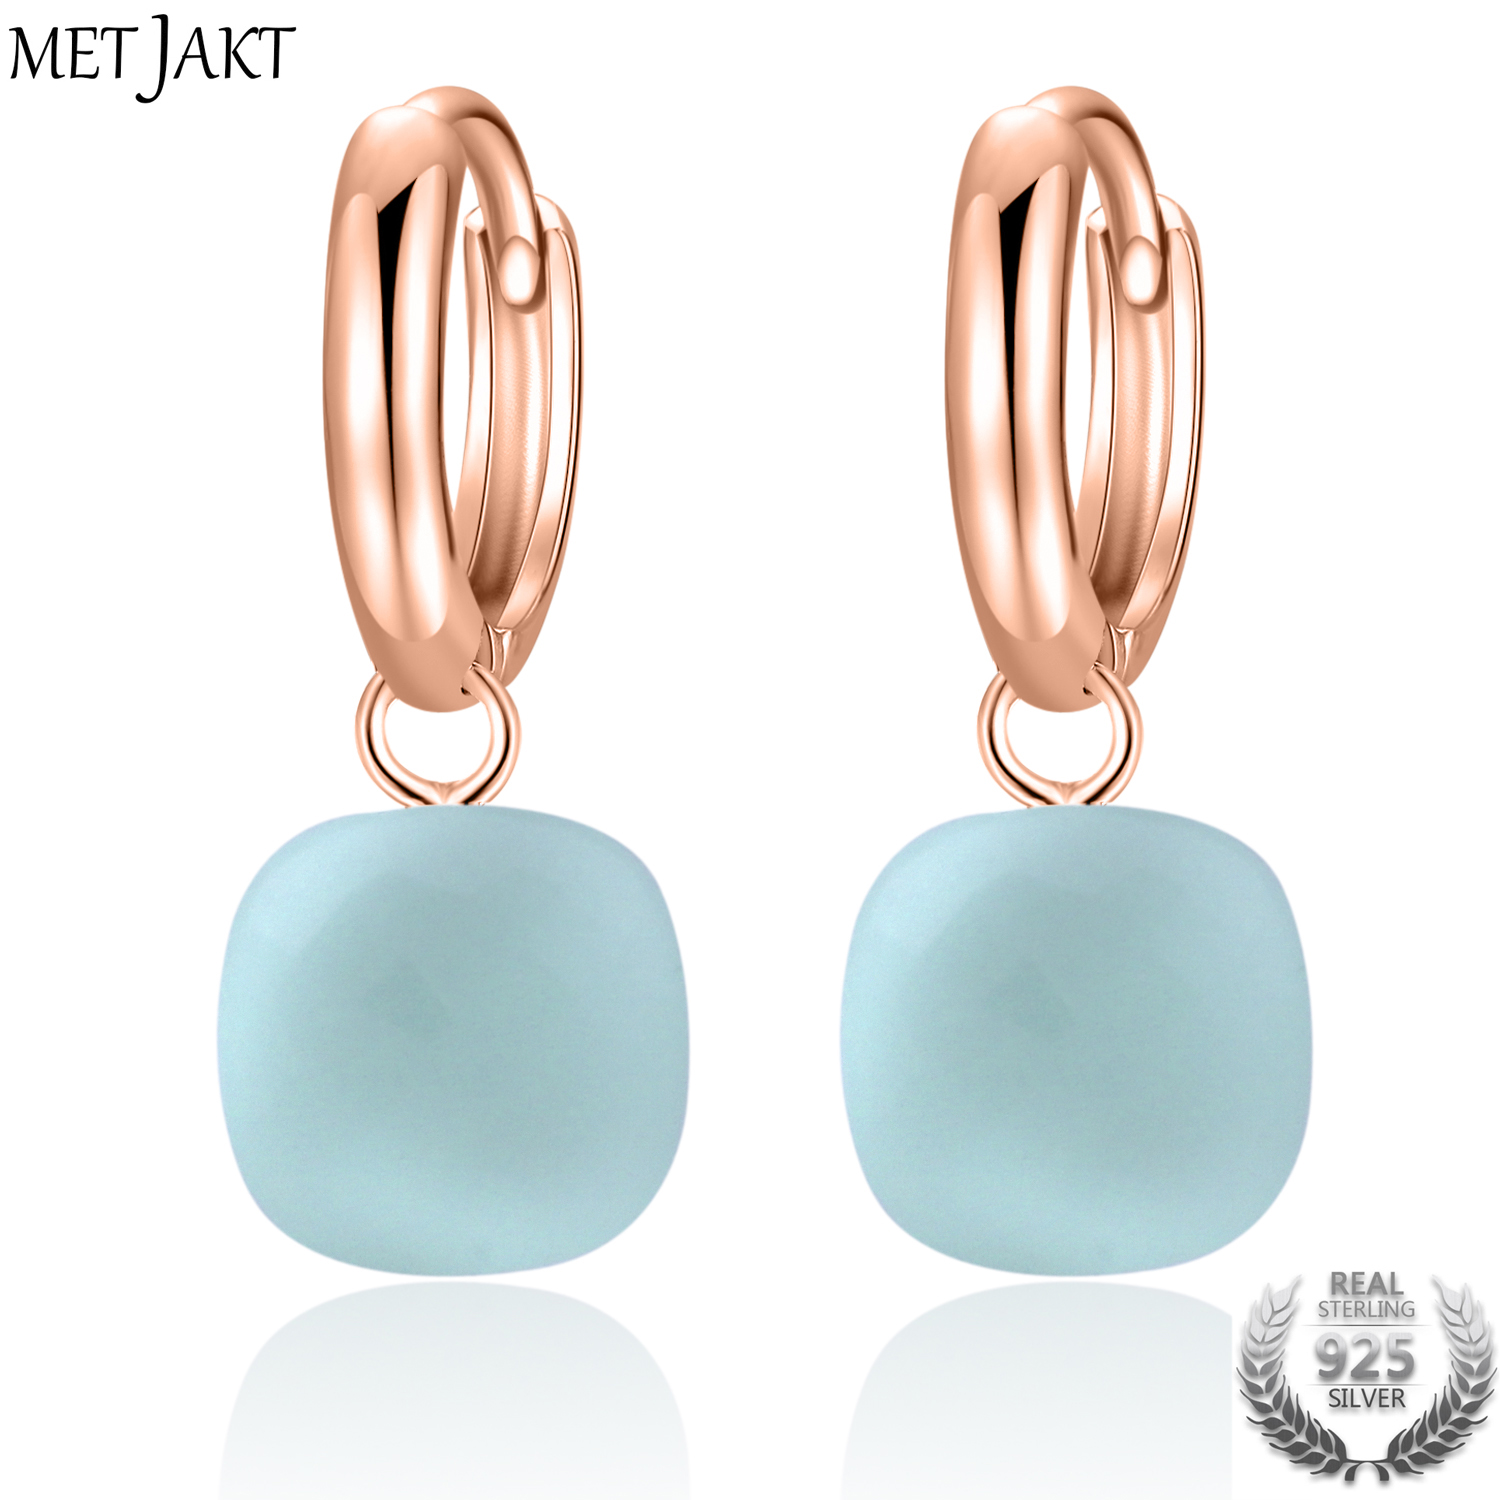 MetJakt Casual Natural Sky Blue Agate Earrings Solid 925 Sterling Silver and Rose Gold Color Earring for Wedding for Women Gift-in Earrings from Jewelry & Accessories    1